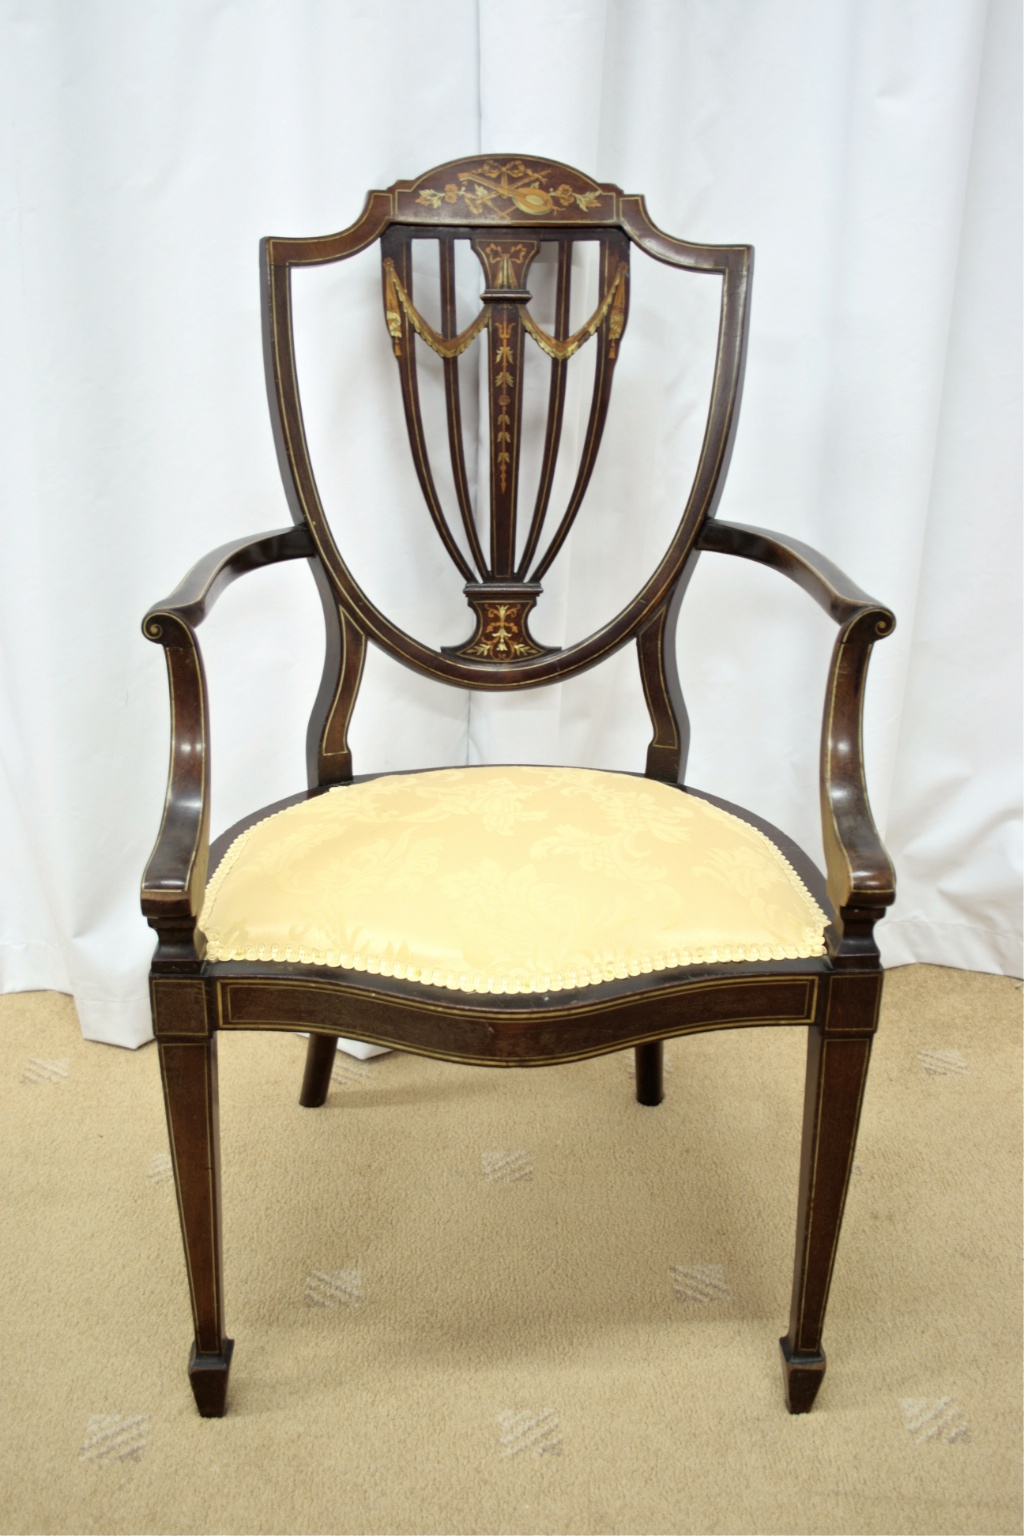 Edwardian Inlaid Bedroom Chair For Sale Classifieds